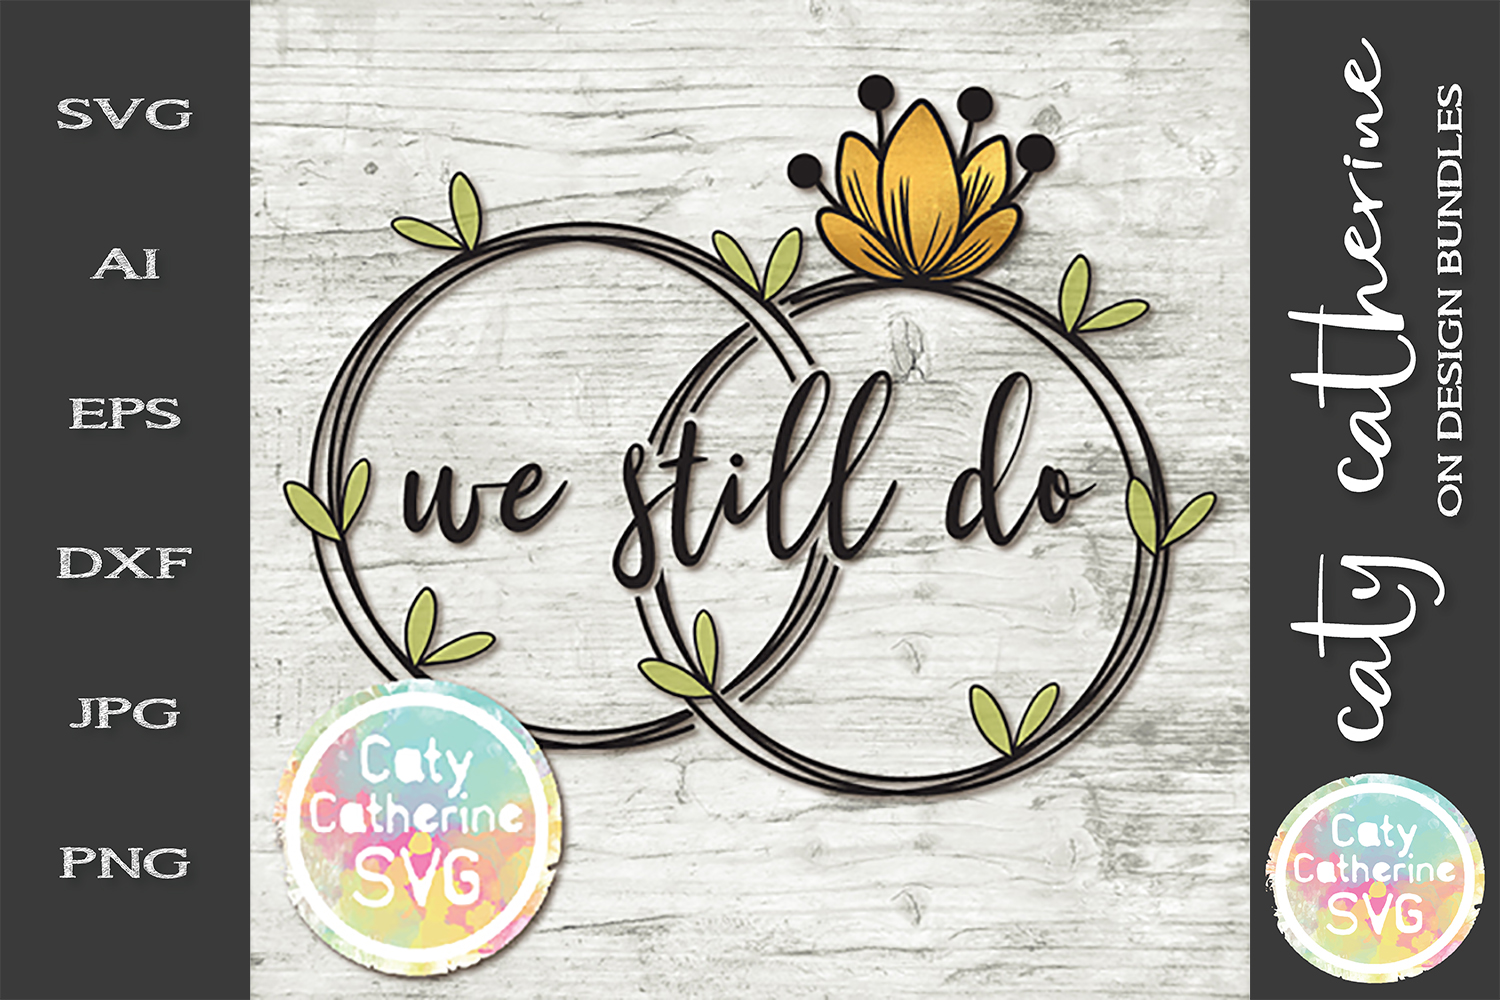 We Still Do Floral Wreath Wedding Bands SVG Cut File example image 1